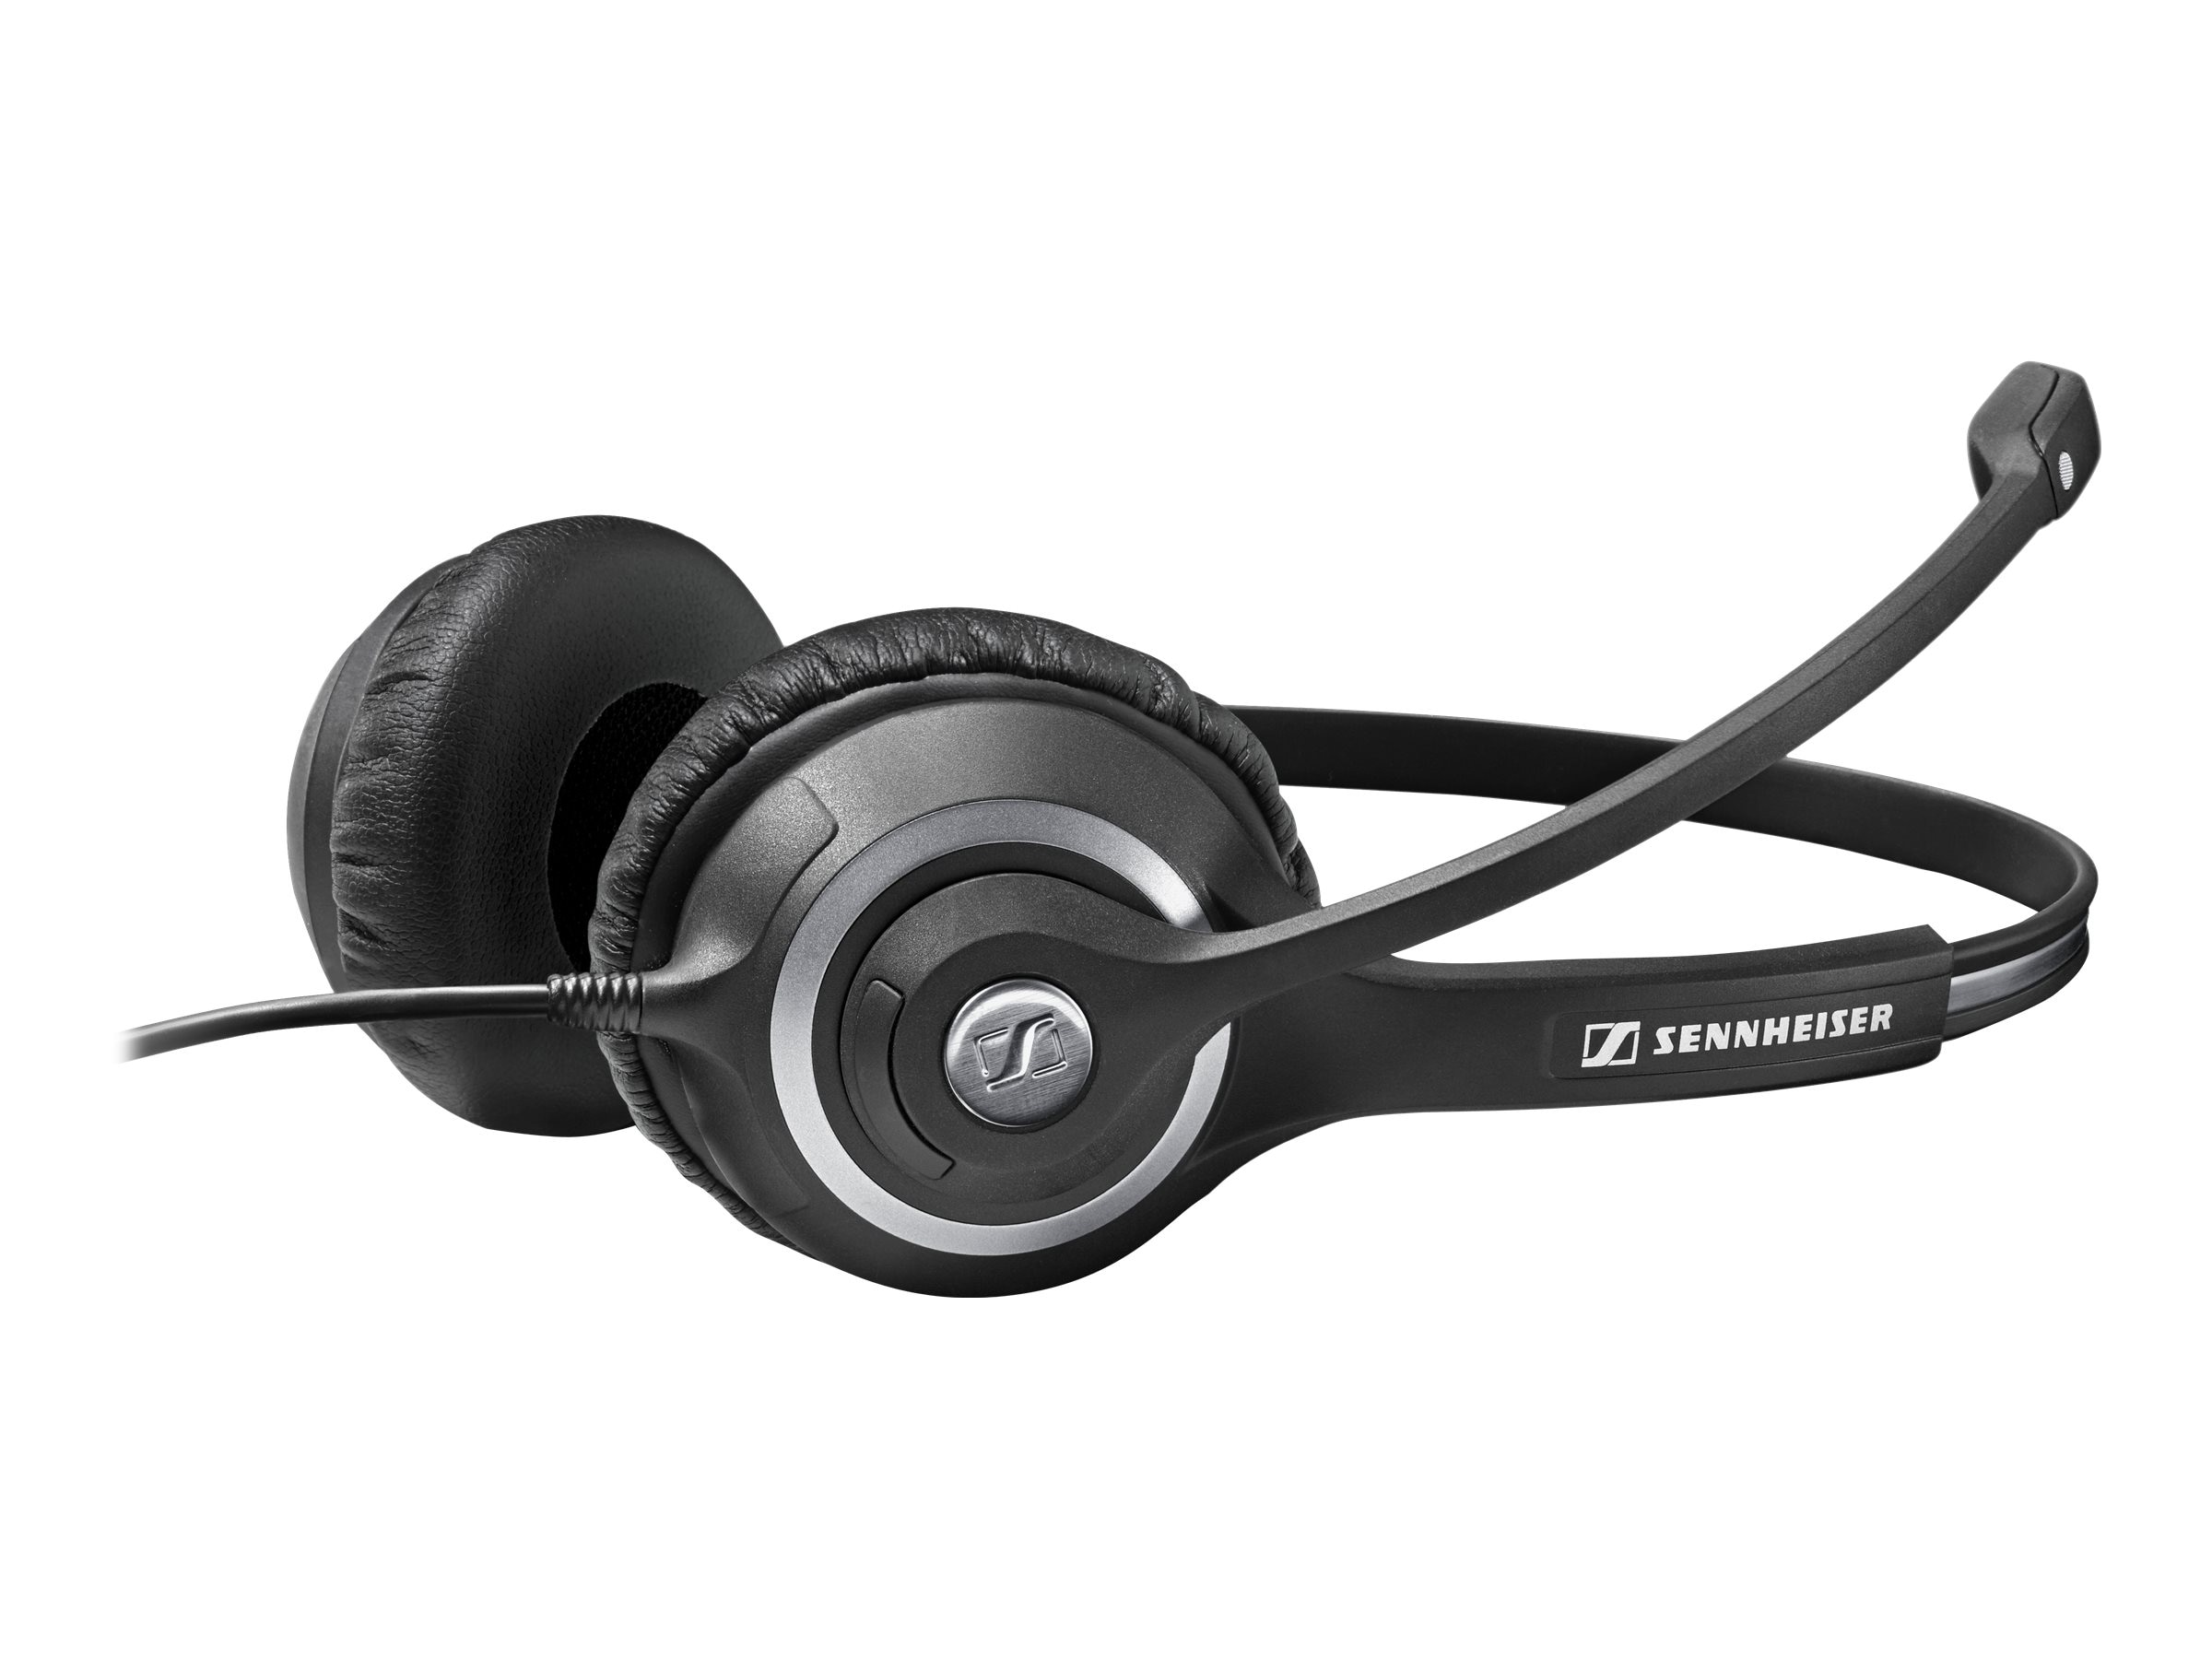 Sennheiser Dual Sided USB Pro Communication Headset, 506483